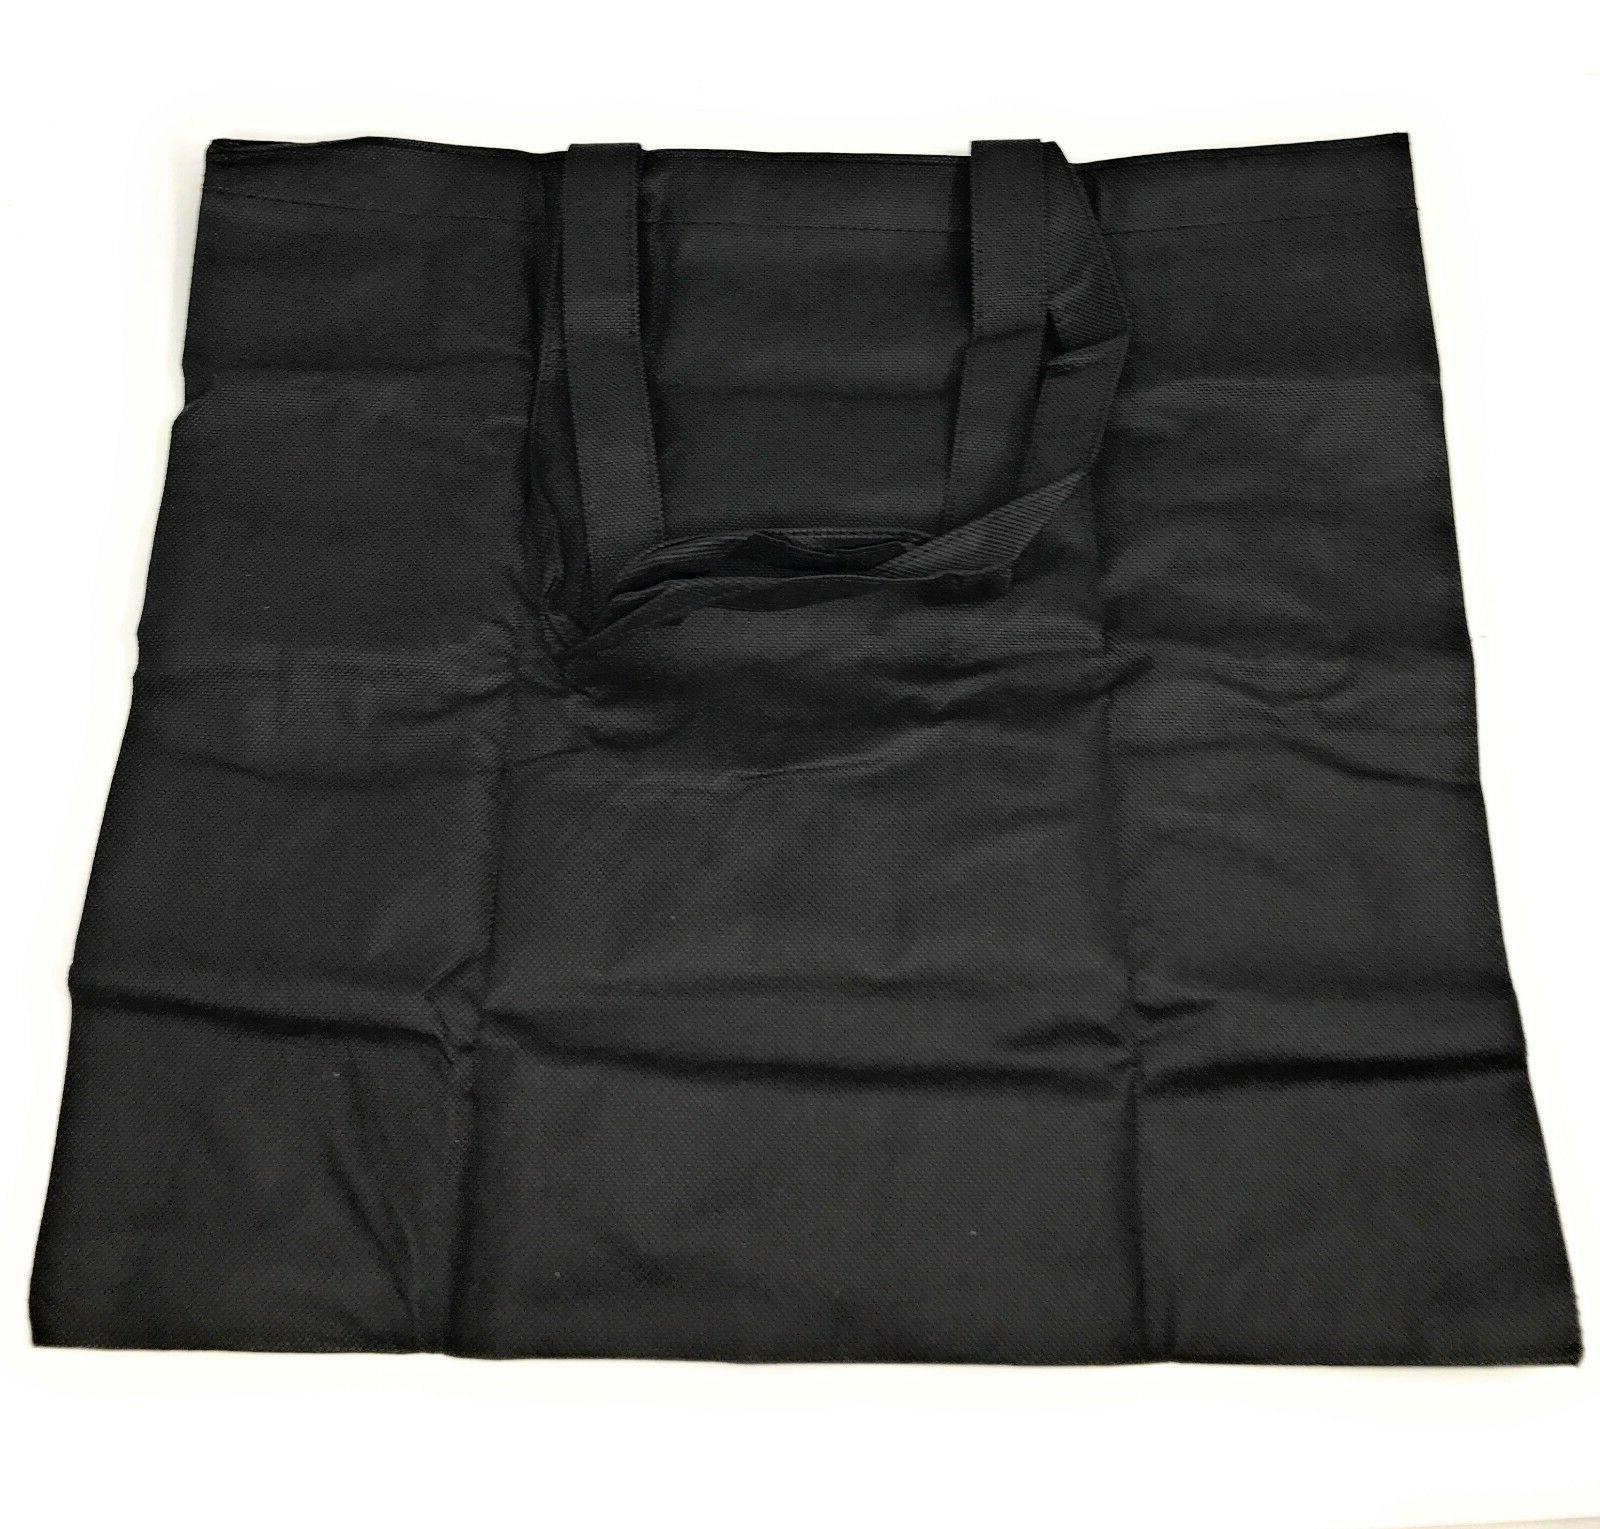 3 Foldable Reusable Grocery Shopping Tote Bags